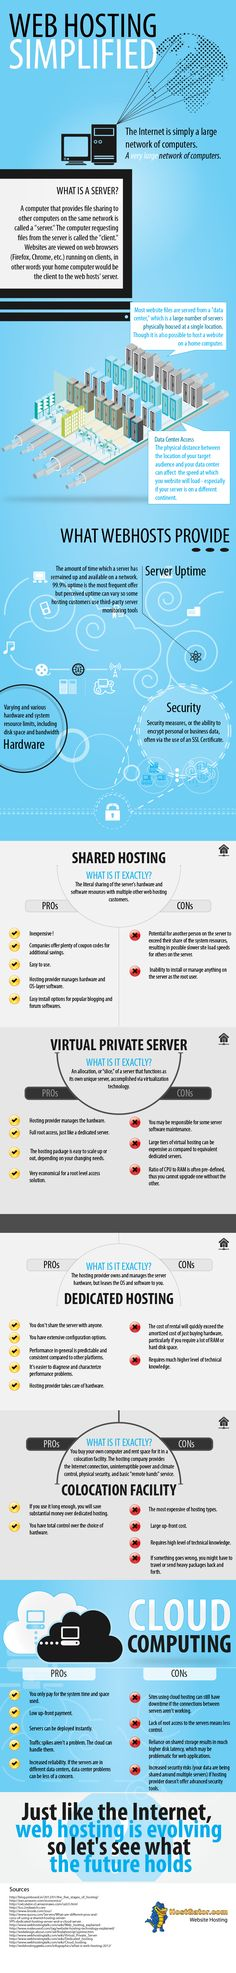 There are many different types of web hosting available today.  This infographic endeavors to explain these different types of web hosting: